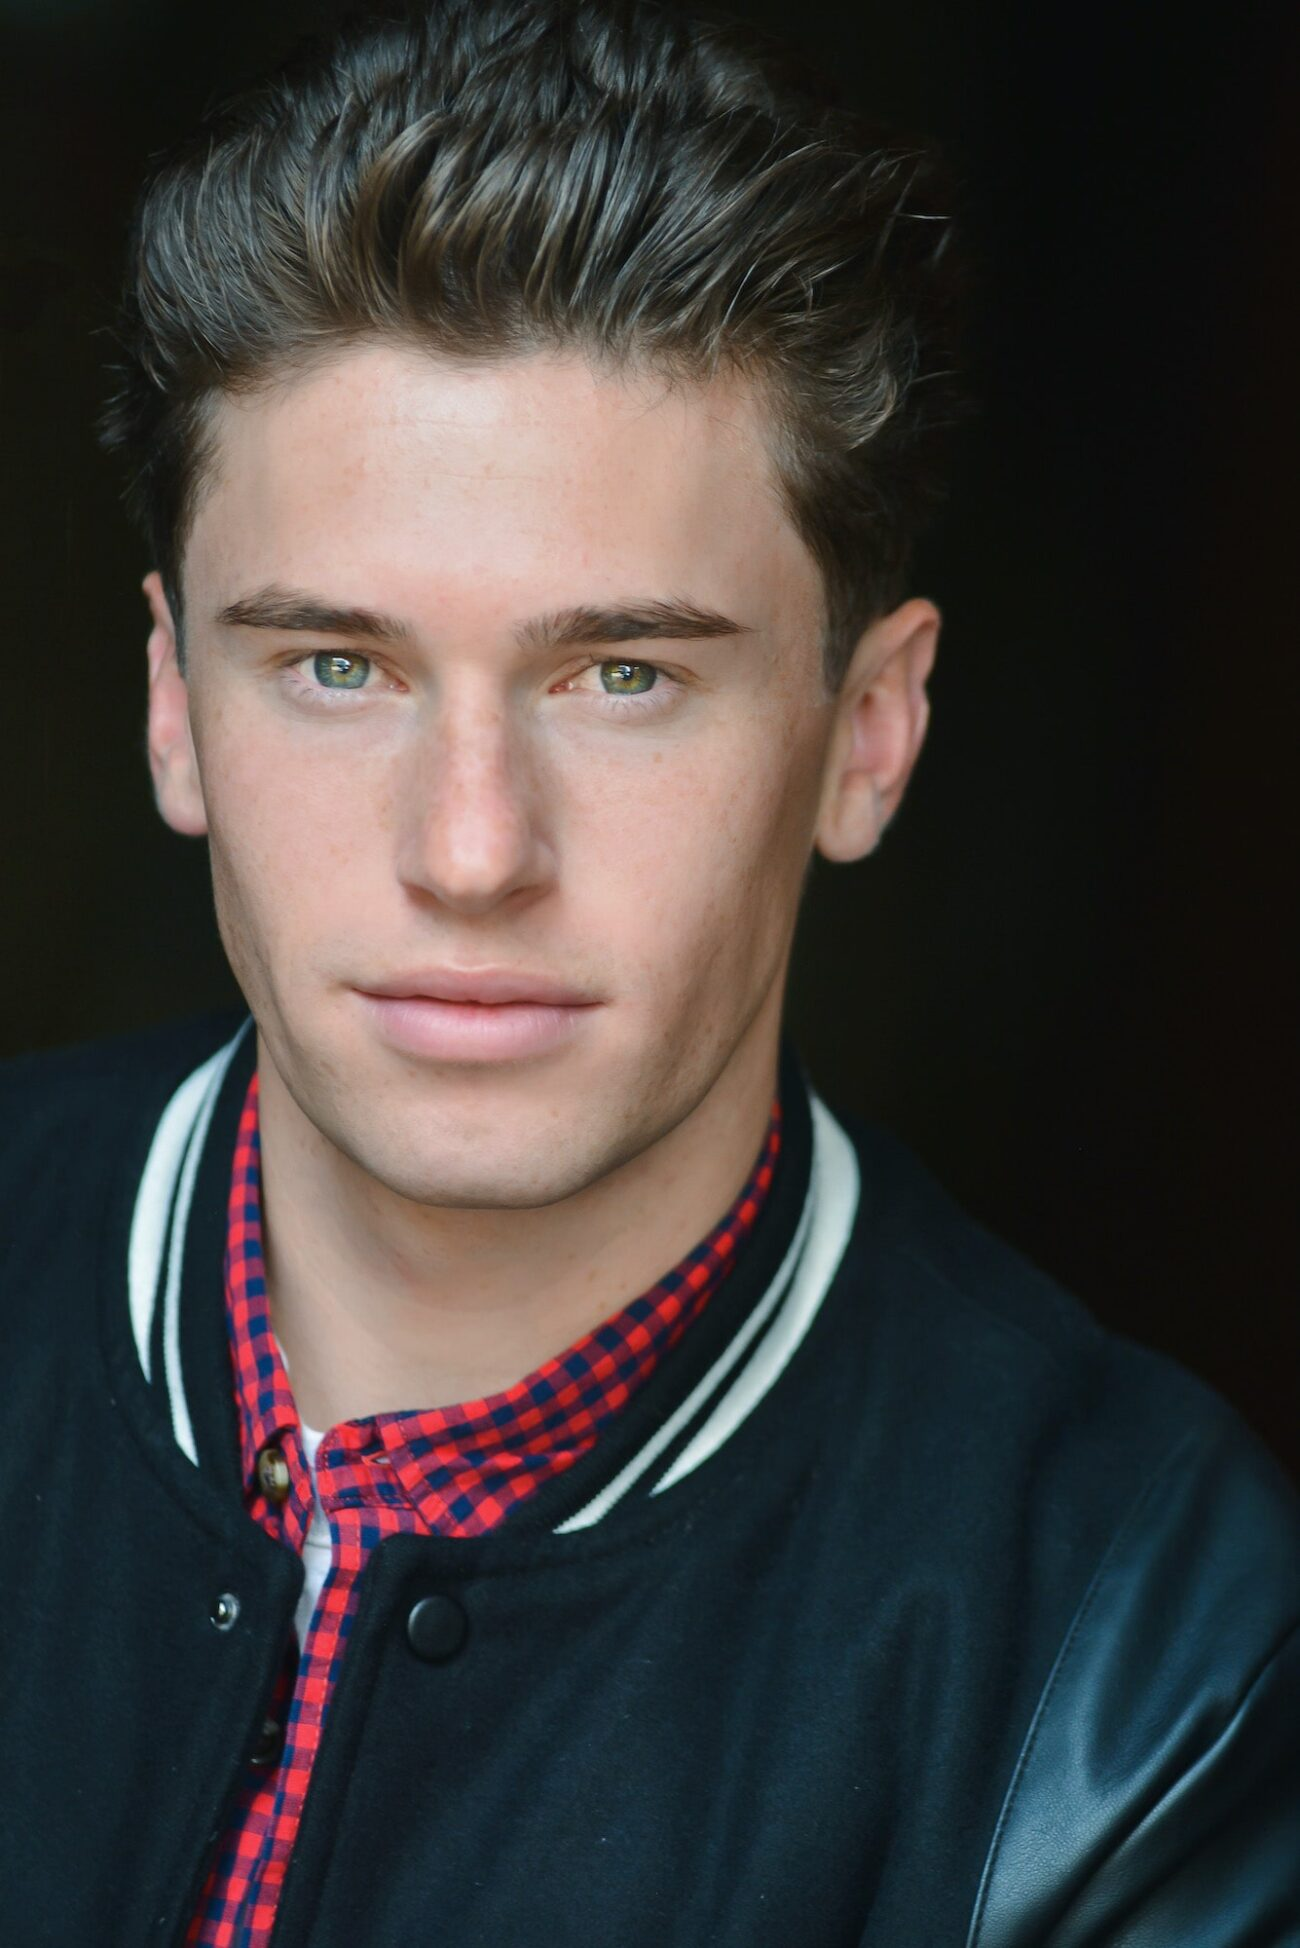 Carter Glade is a rising show business start who you can see in 'Freaky,' 'Her Deadly Boyfriend,' and 'Better Call Saul.' Meet the talented man today.